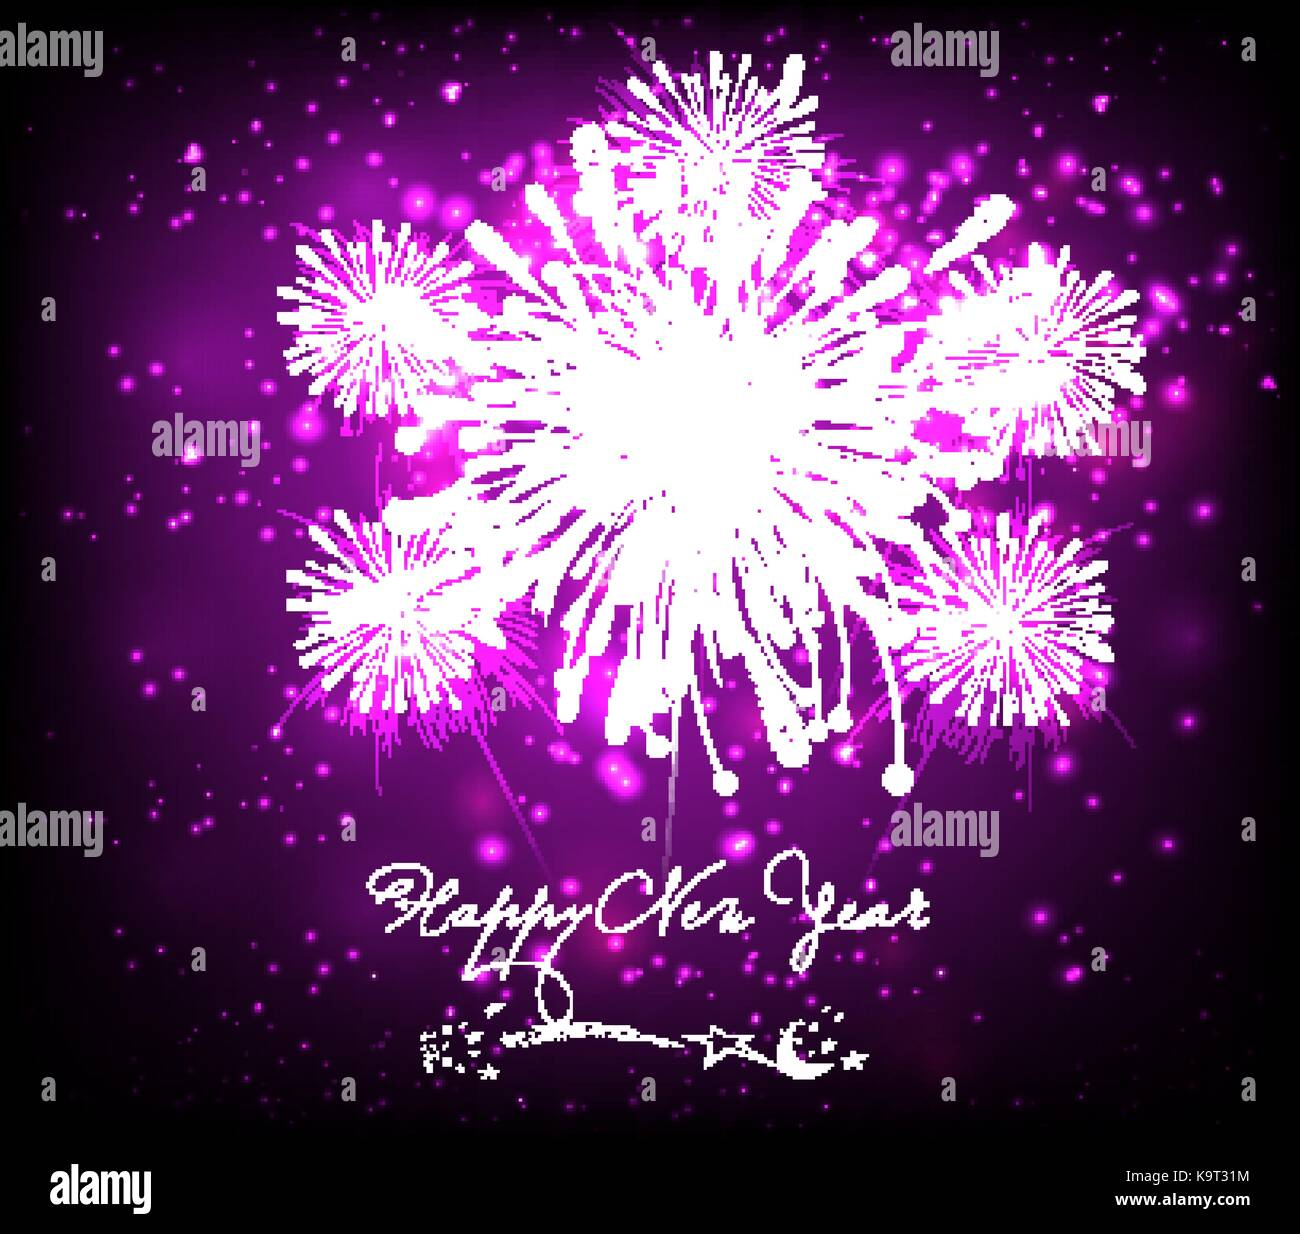 happy new year background black and purple